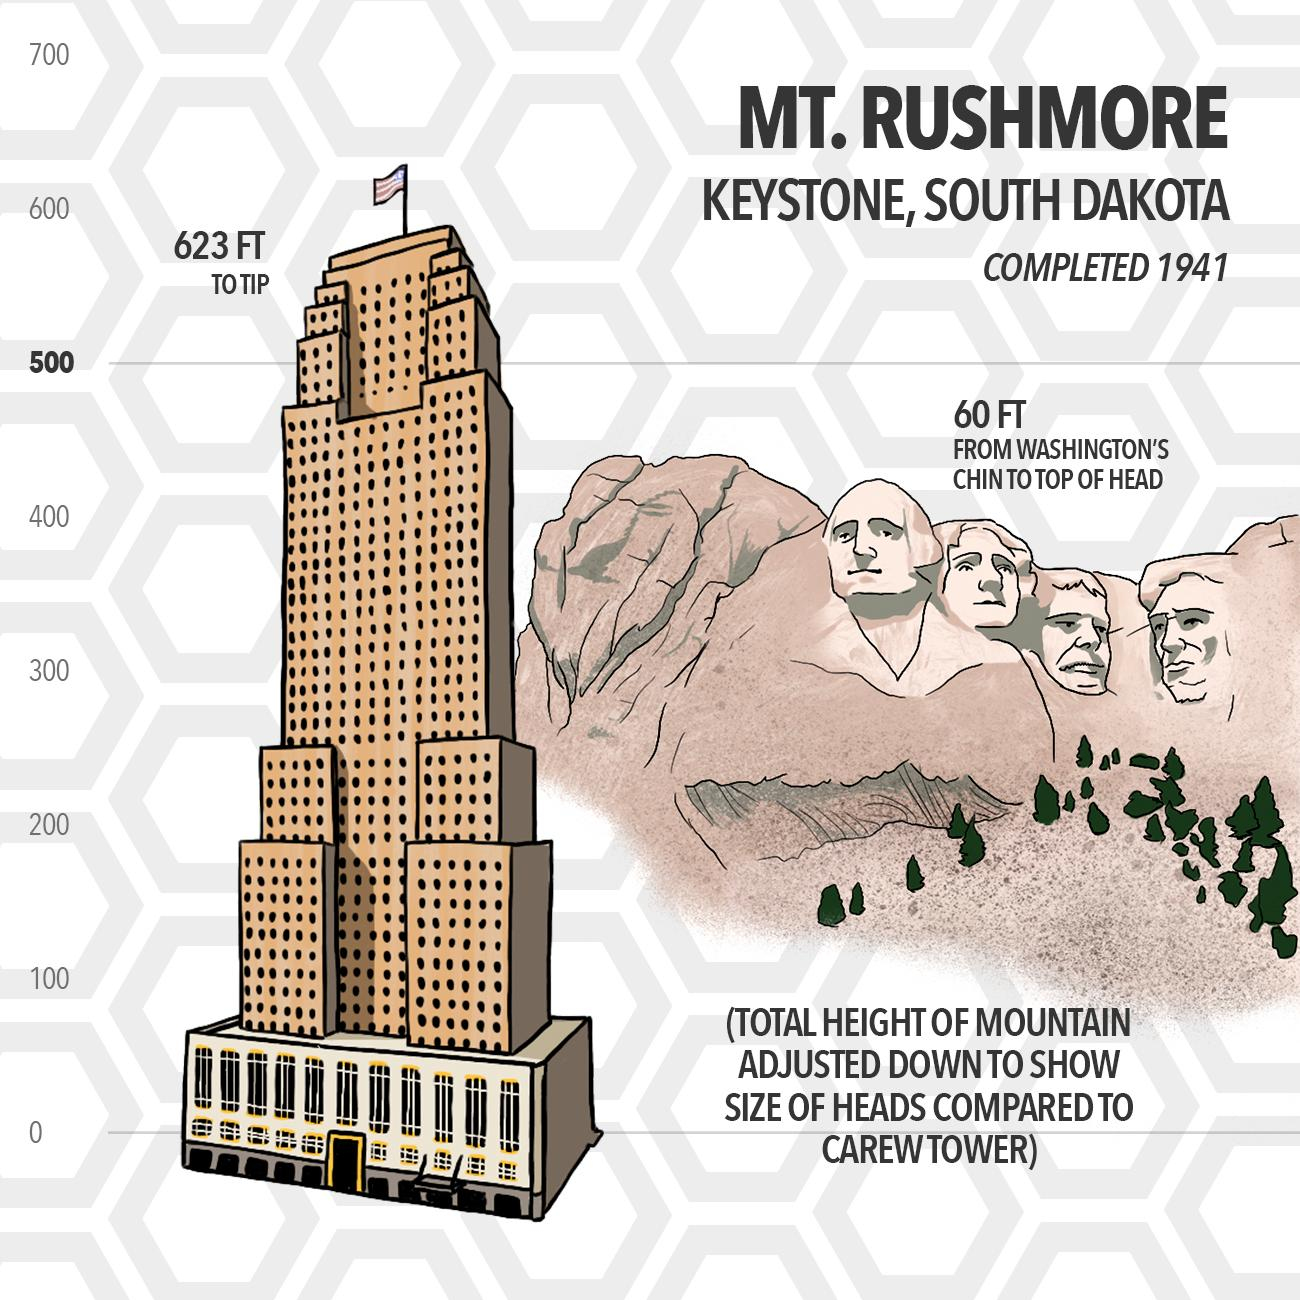 Mt. Rushmore in Keystone, South Dakota is huge. But when you compare the size of Washington's head from chin to top (a total of 60 feet), it's really not super large when compared to the Carew Tower. All four heads were finished by 1941. (Source: Encyclopedia Britannica) / Image: Phil Armstrong // Published: 5.15.19